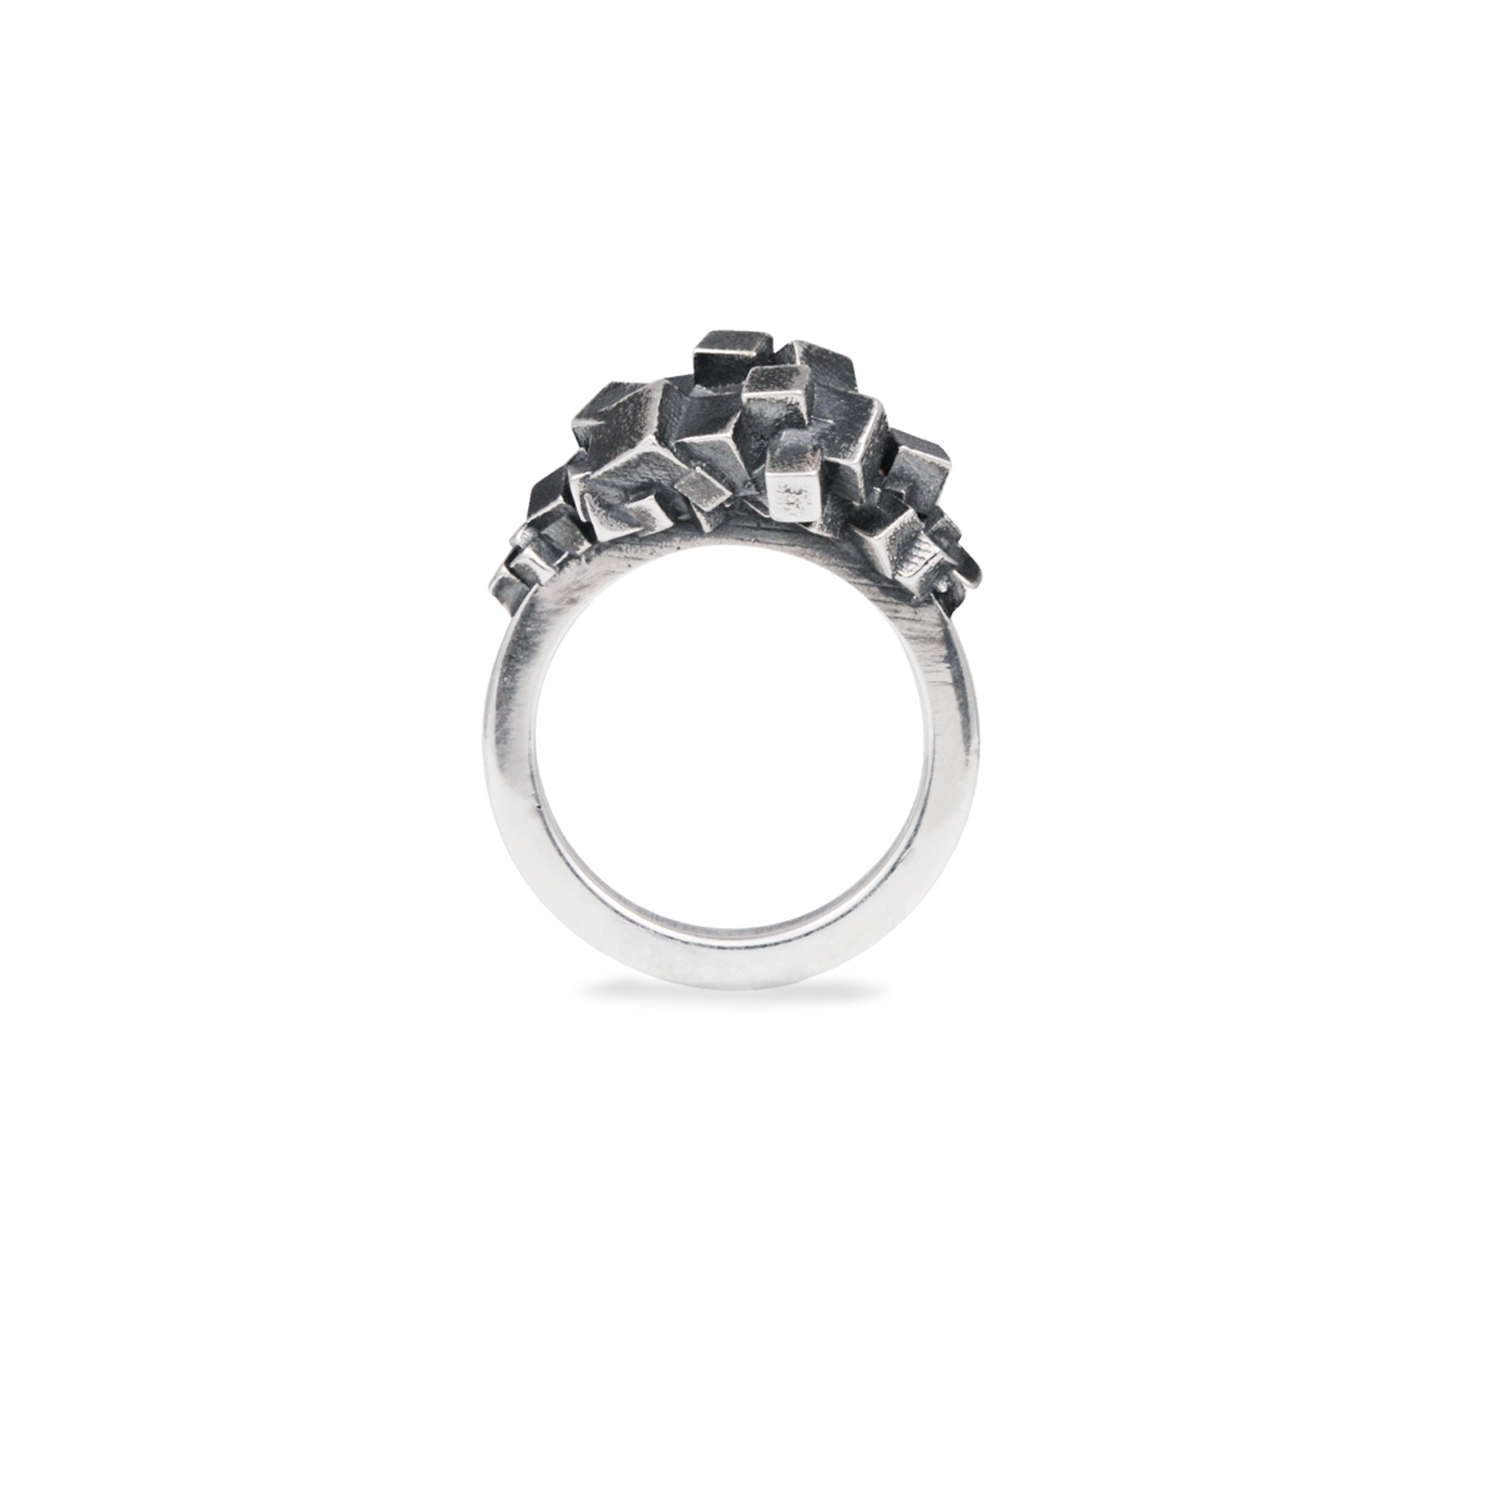 Eco - Rawsen silver ring